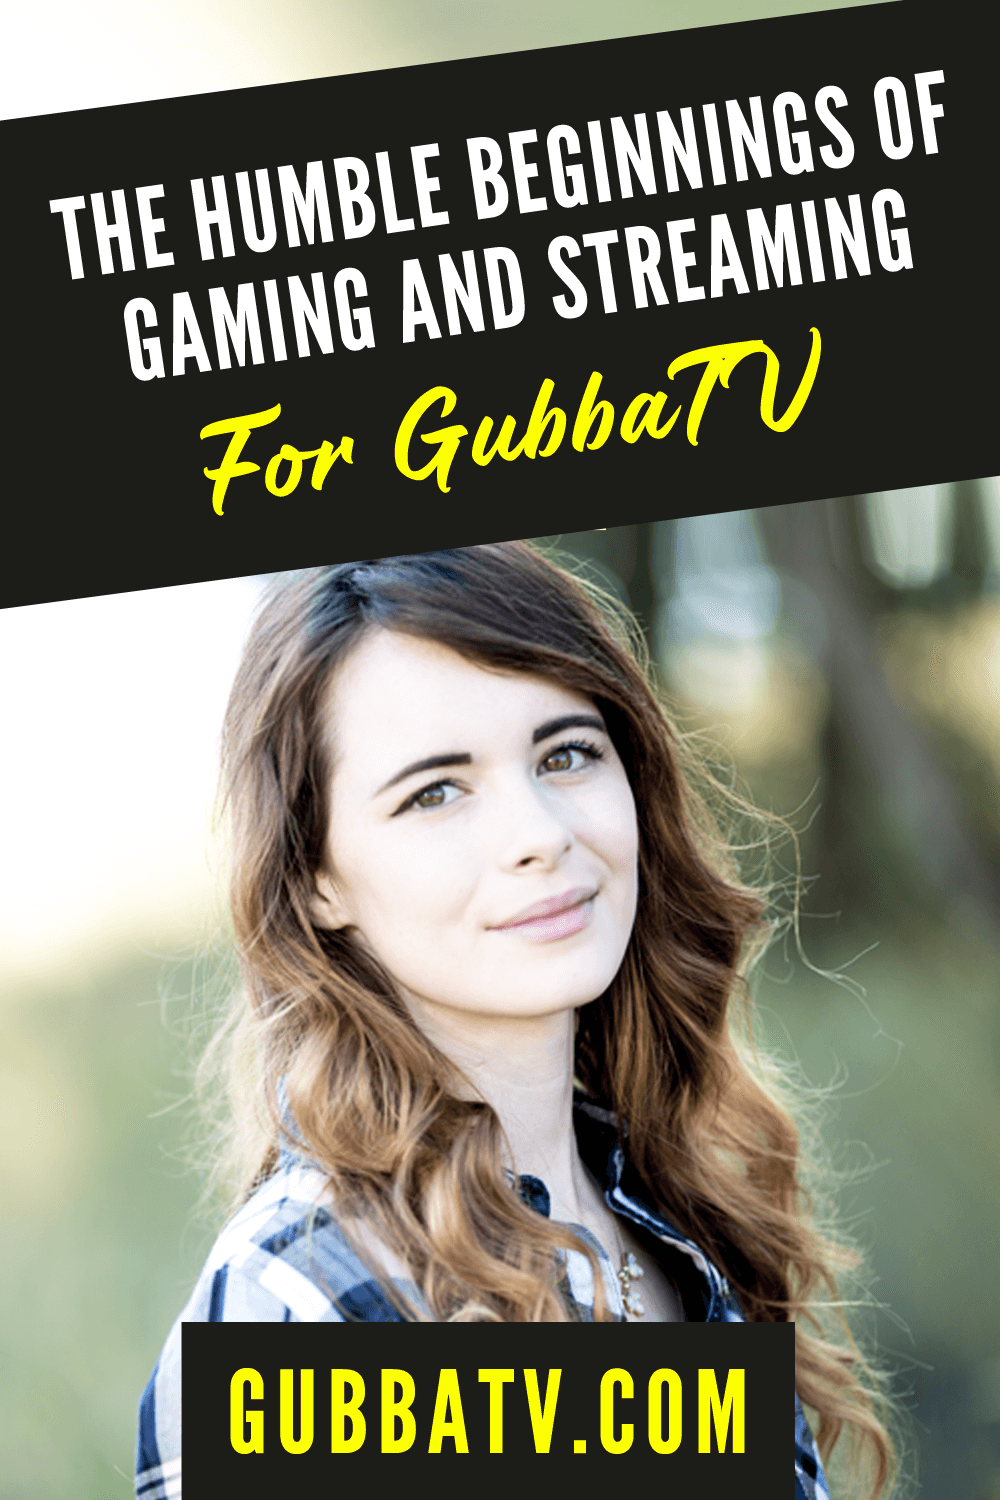 The Humble Beginnings of Gaming and Streaming for GubbaTV